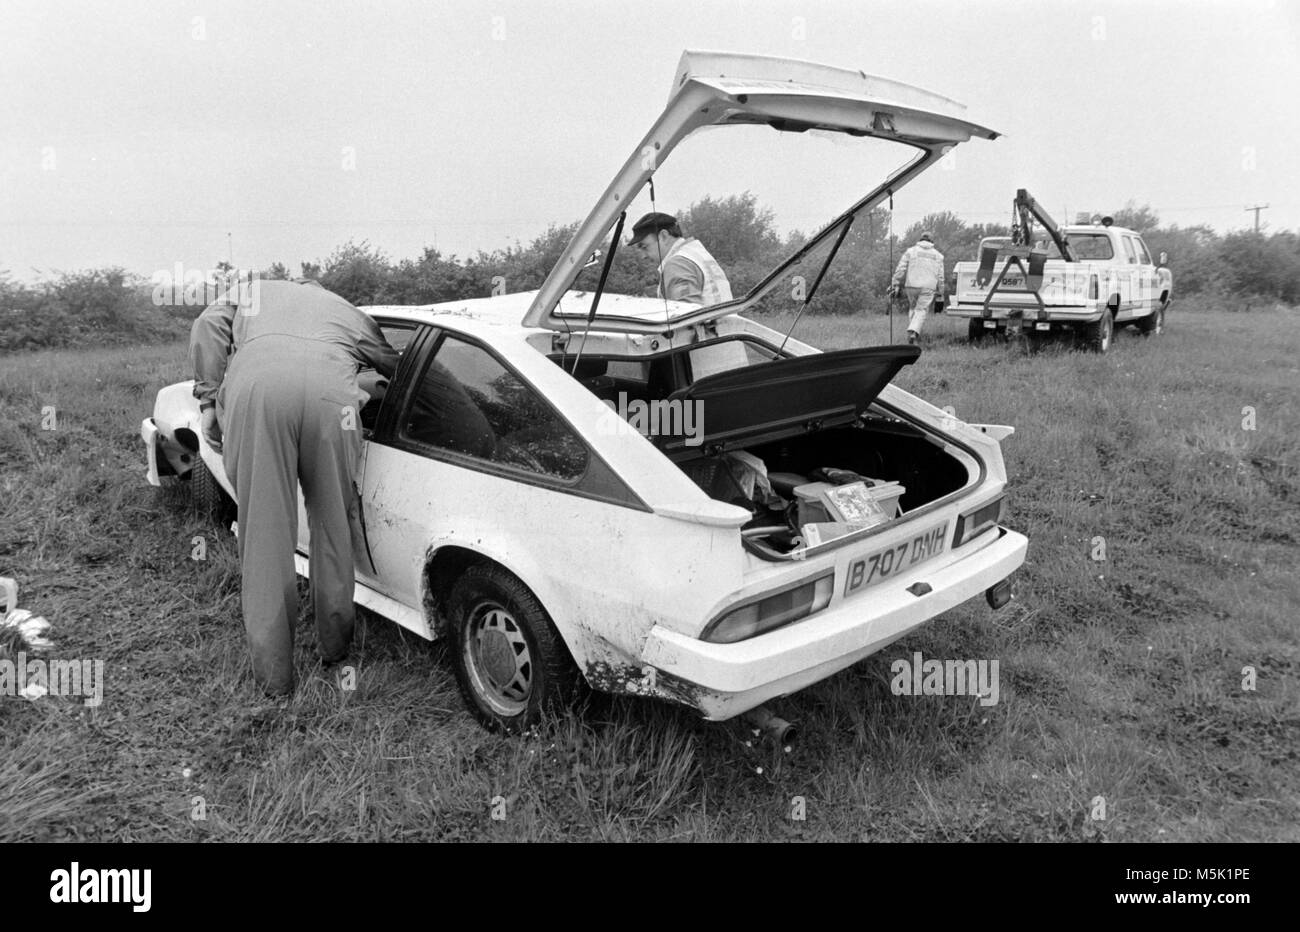 Ditch Black And White Stock Photos Images Alamy Opel Manta Gte Wiring Diagram A Stolen Car Abandoned Dumped In Upside